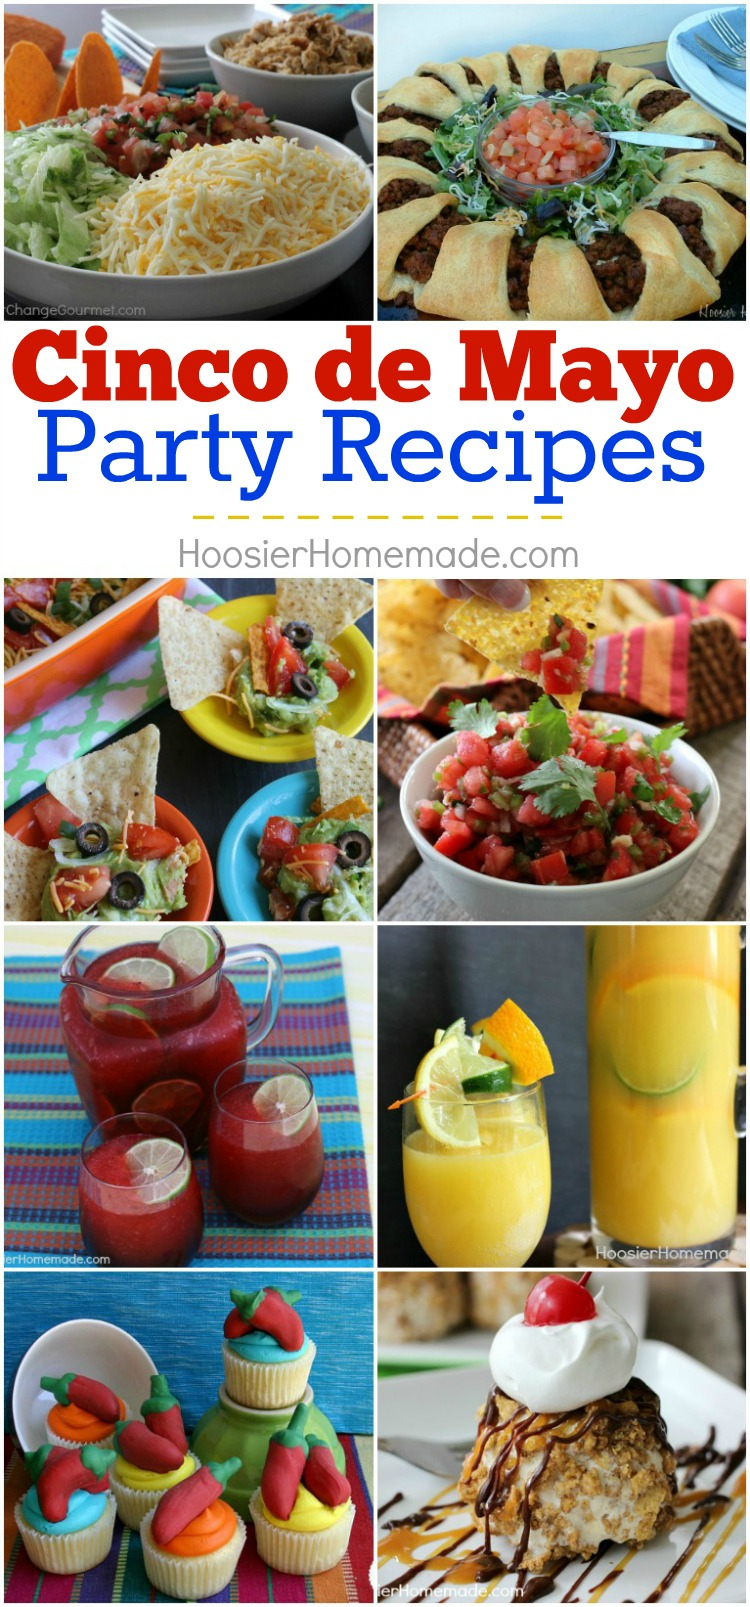 Are you ready to celebrate? These Cinco de Mayo Recipes are sure to please guests! Main Dishes, Sides, Snacks, Drinks and of course Dessert too! Be sure to save the recipes by pinning to your Party Board!